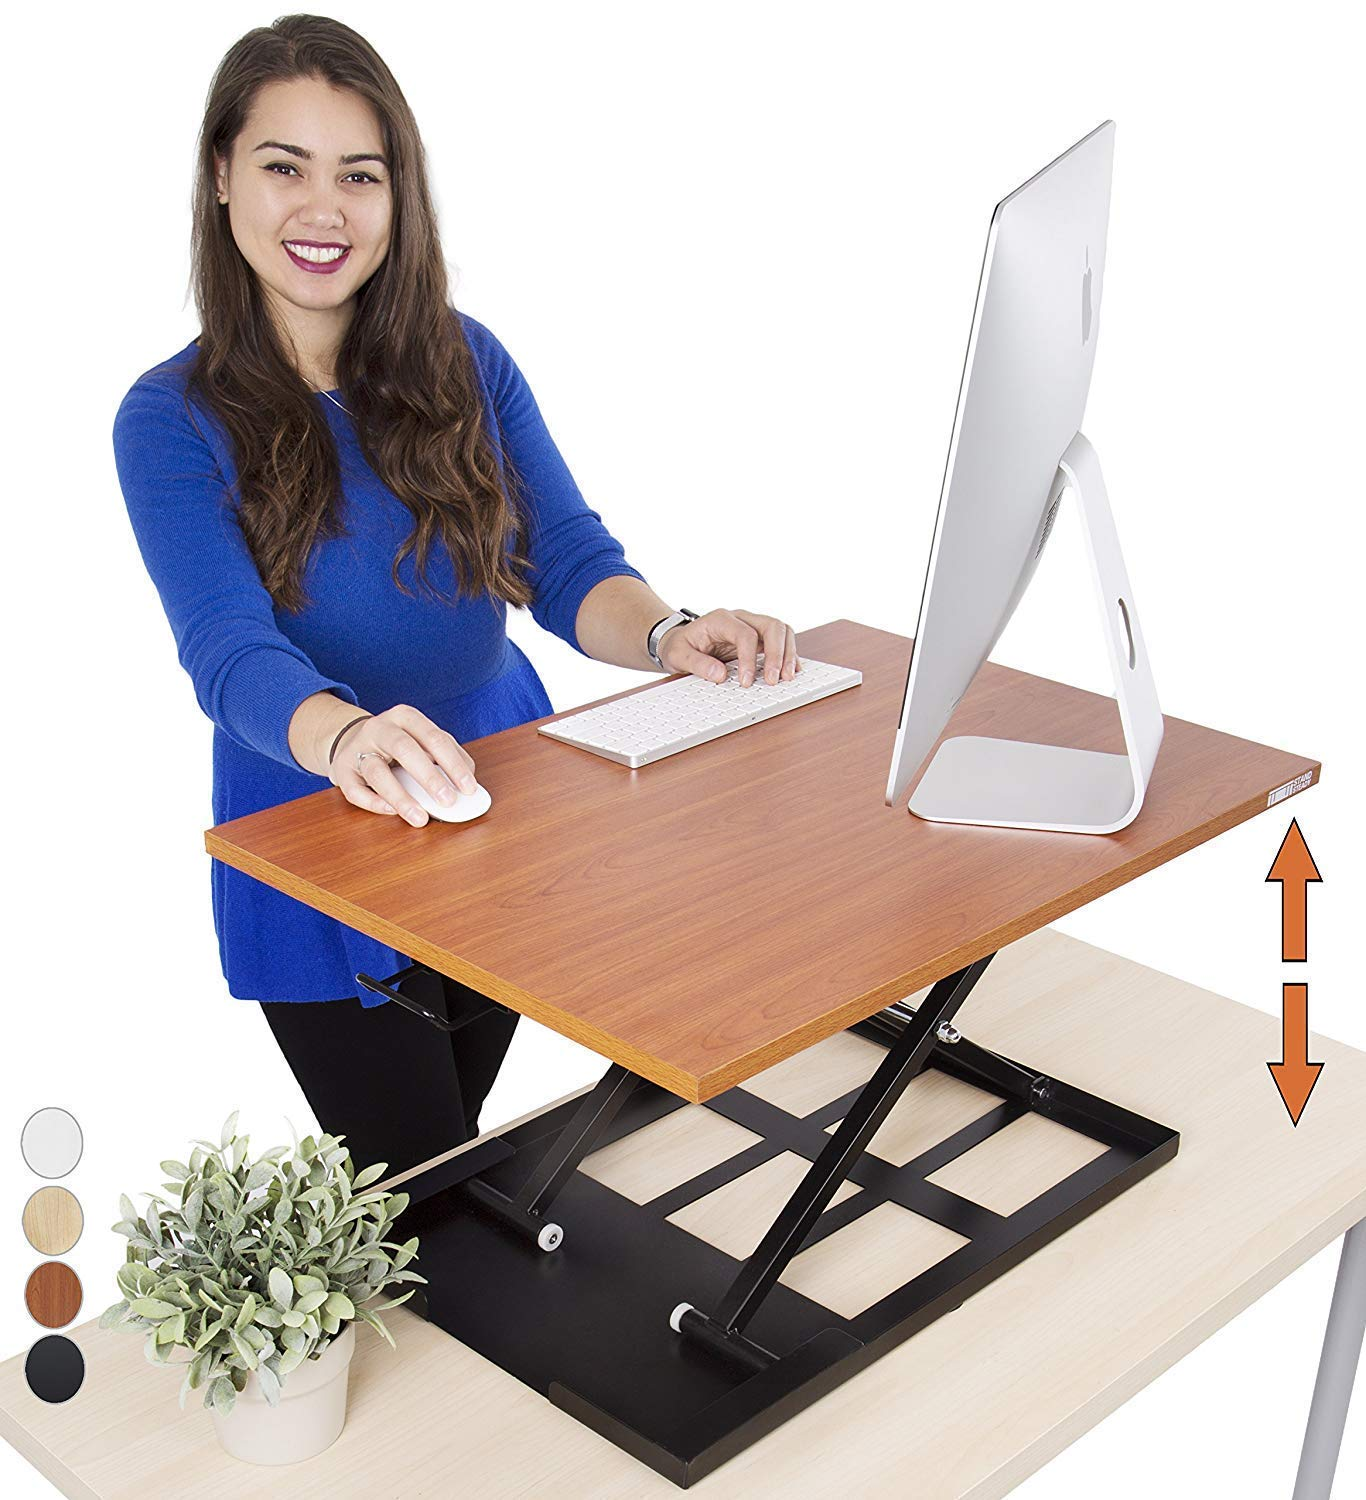 Standing Desk X-Elite - Stand Steady Standing Desk | Instantly Convert Any Desk into a Sit/Stand up Desk, Height-Adjustable, Fully Assembled Desk Converter (Cherry/28 inch) (Renewed) by Stand Steady